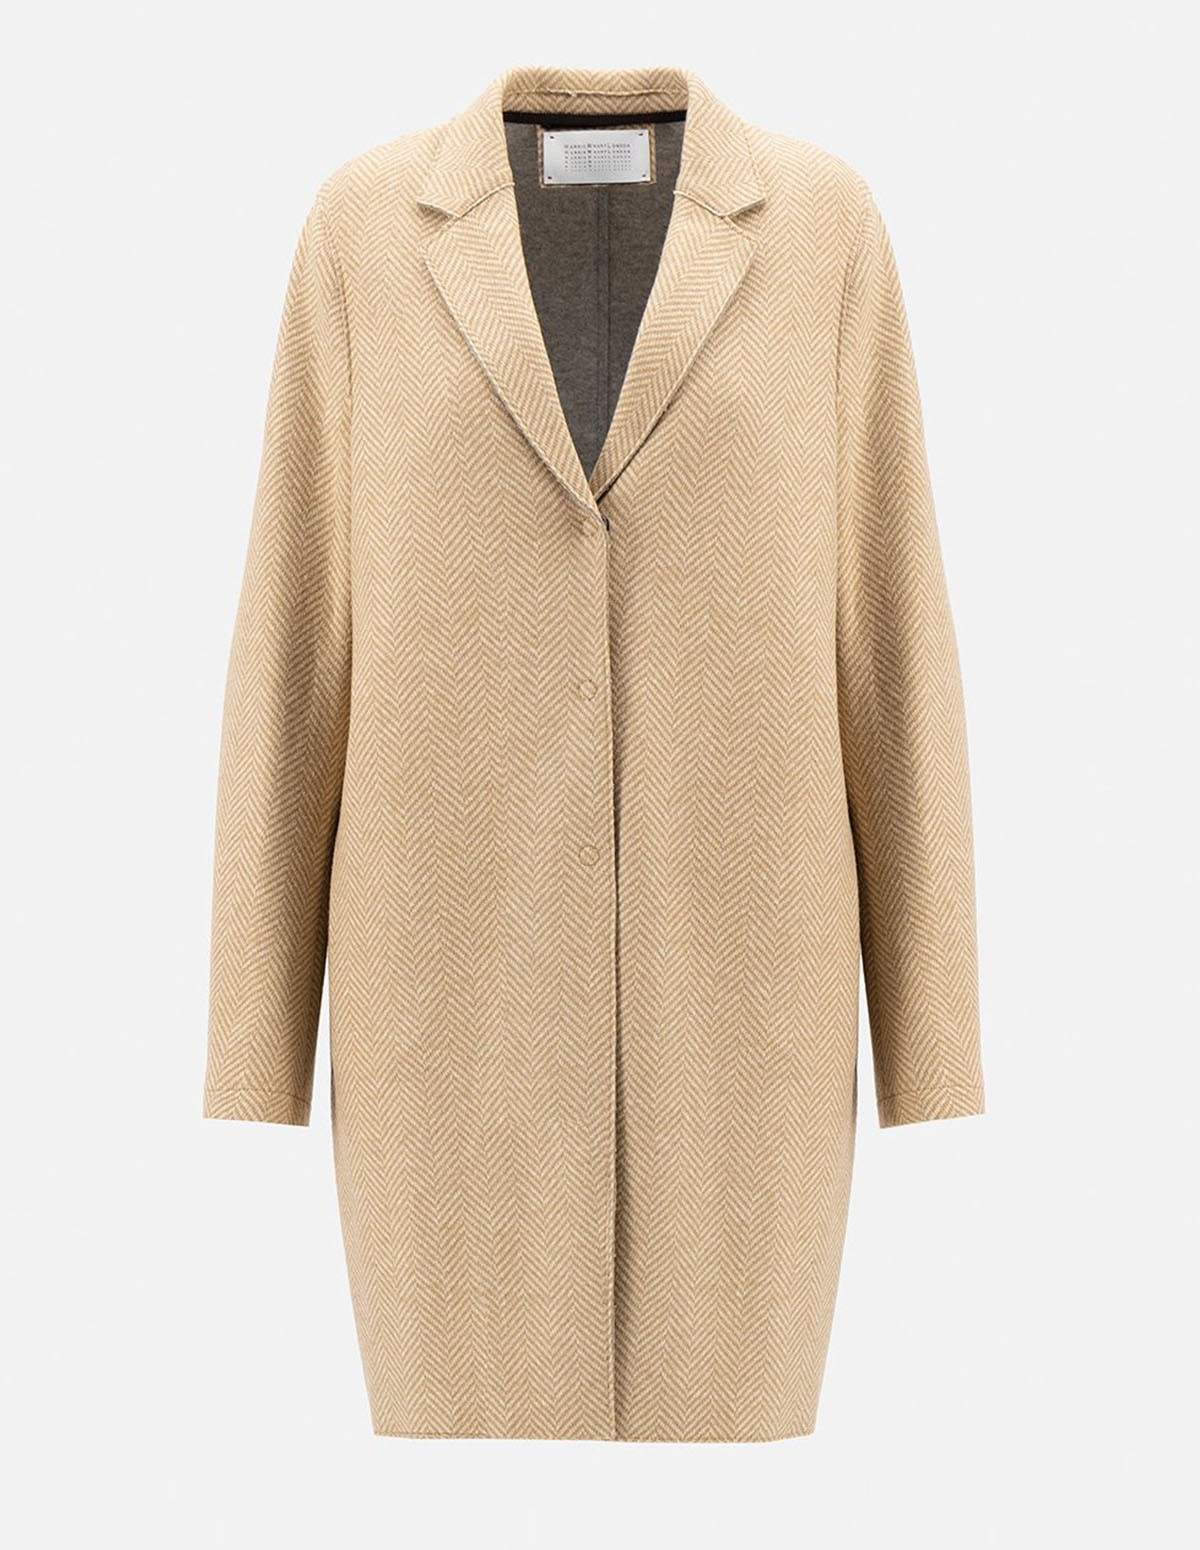 Hwl W Cocoon Coat Cashmere - TAN 441